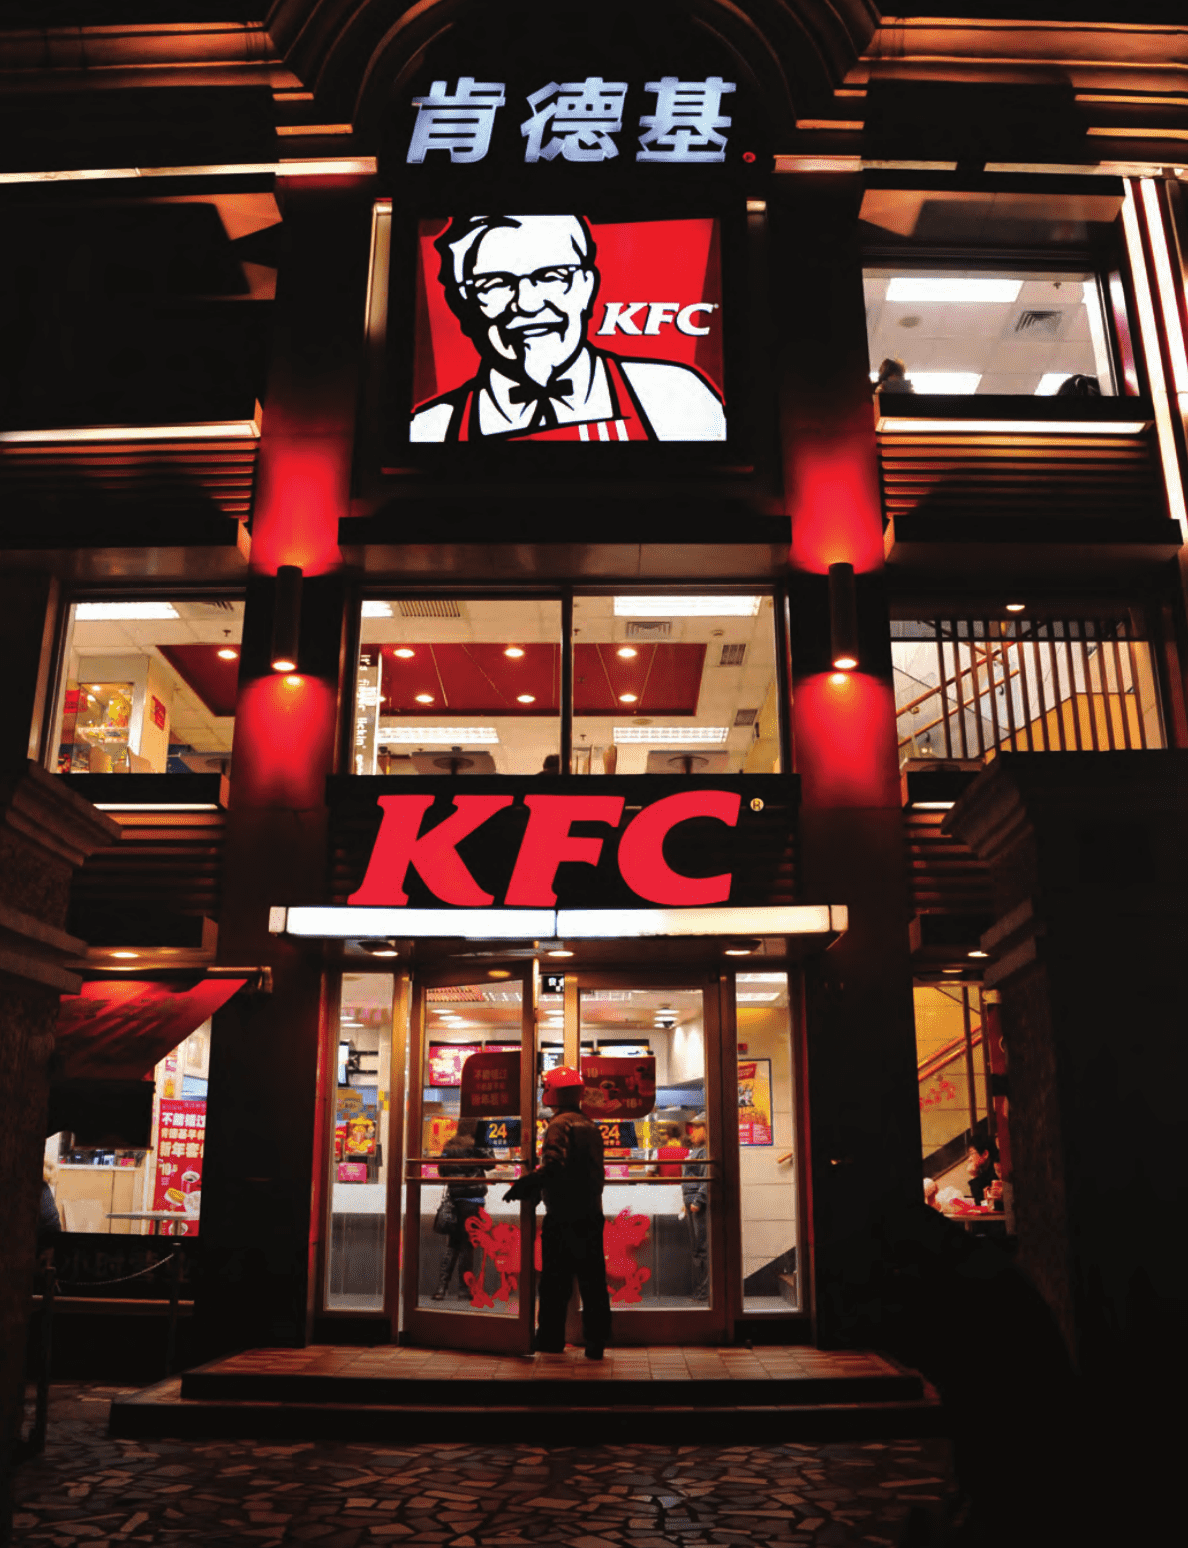 kfc in the chinese market Kfc china's fortunes began to turn around in 2016, when yum china spun off from yum brands to focus entirely on the continued expansion of kfc and other restaurant concepts in the china market.